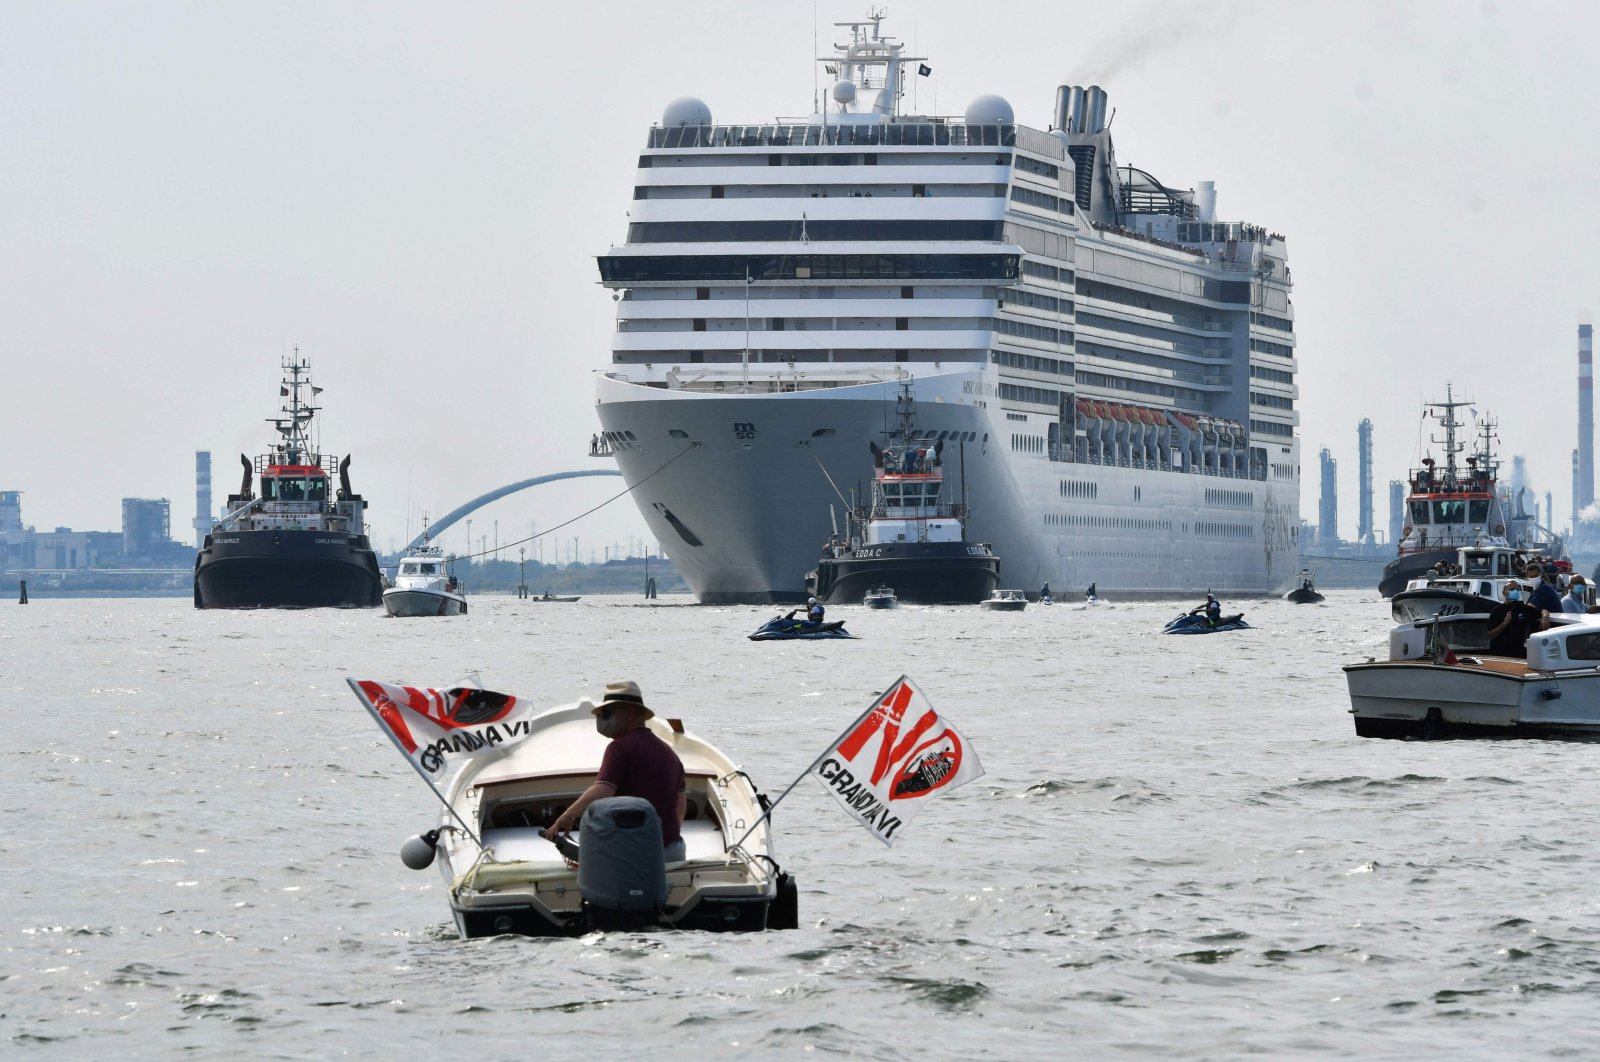 """Environmental protesters from the """"No Grandi Navi"""" (No Big Ships) group (L), demonstrate aboard a small boat against cruise ships in the lagoon, as the MSC Orchestra cruise ship leaves Venice across the basin, Venice, Italy, June 5, 2021. (AFP Photo)"""